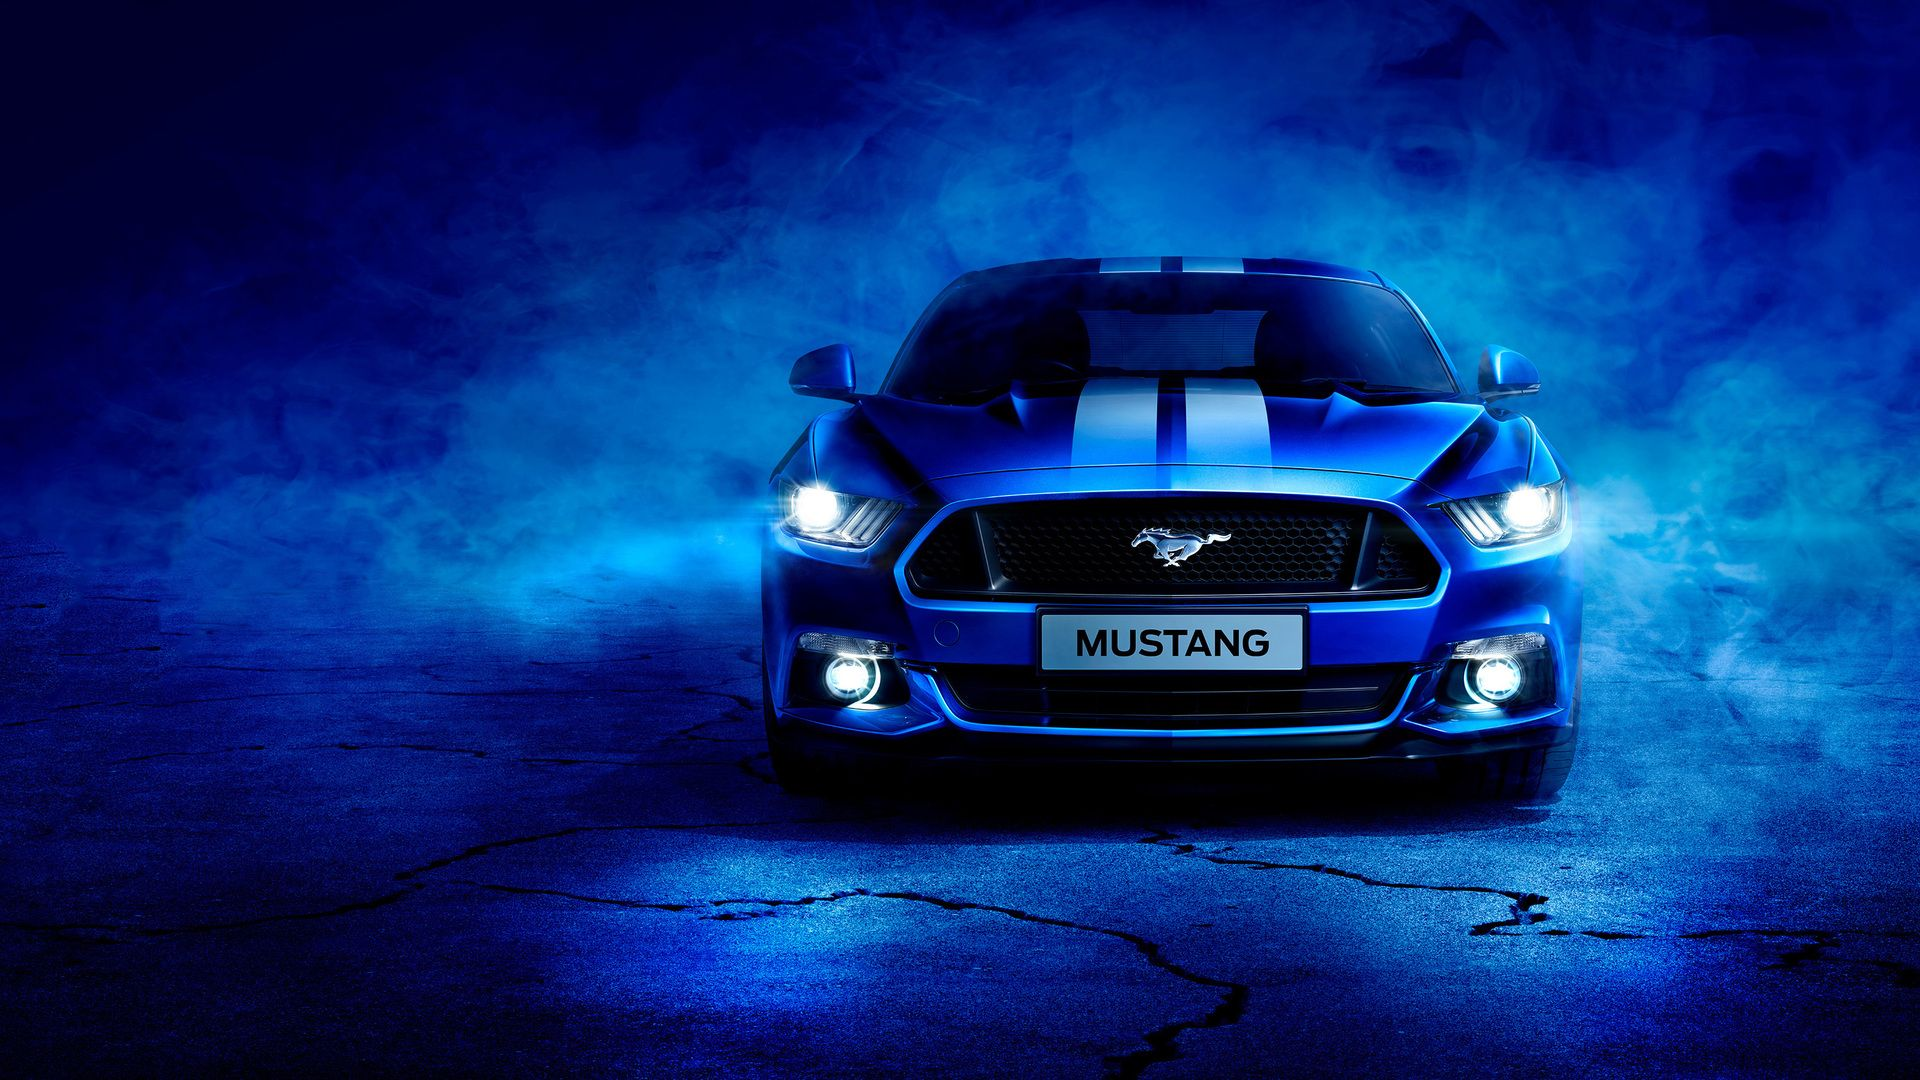 Ford Mustang Blue Laptop Hd Wallpapers Top Free Ford Mustang Blue Laptop Hd Backgrounds Wallpaperaccess